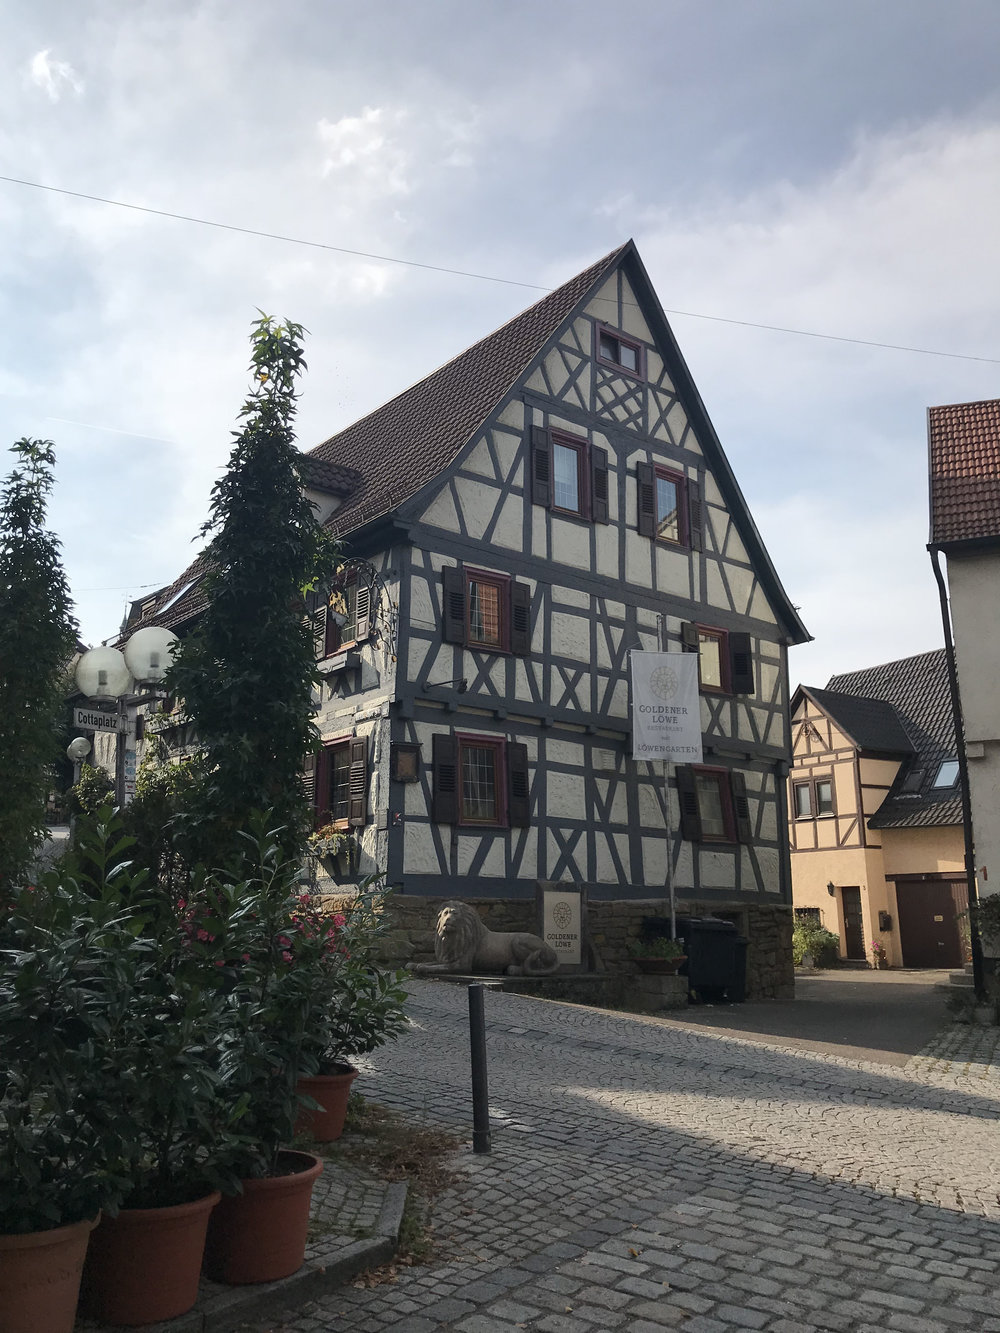 Marbach, the birthplace of the poet Schiller.